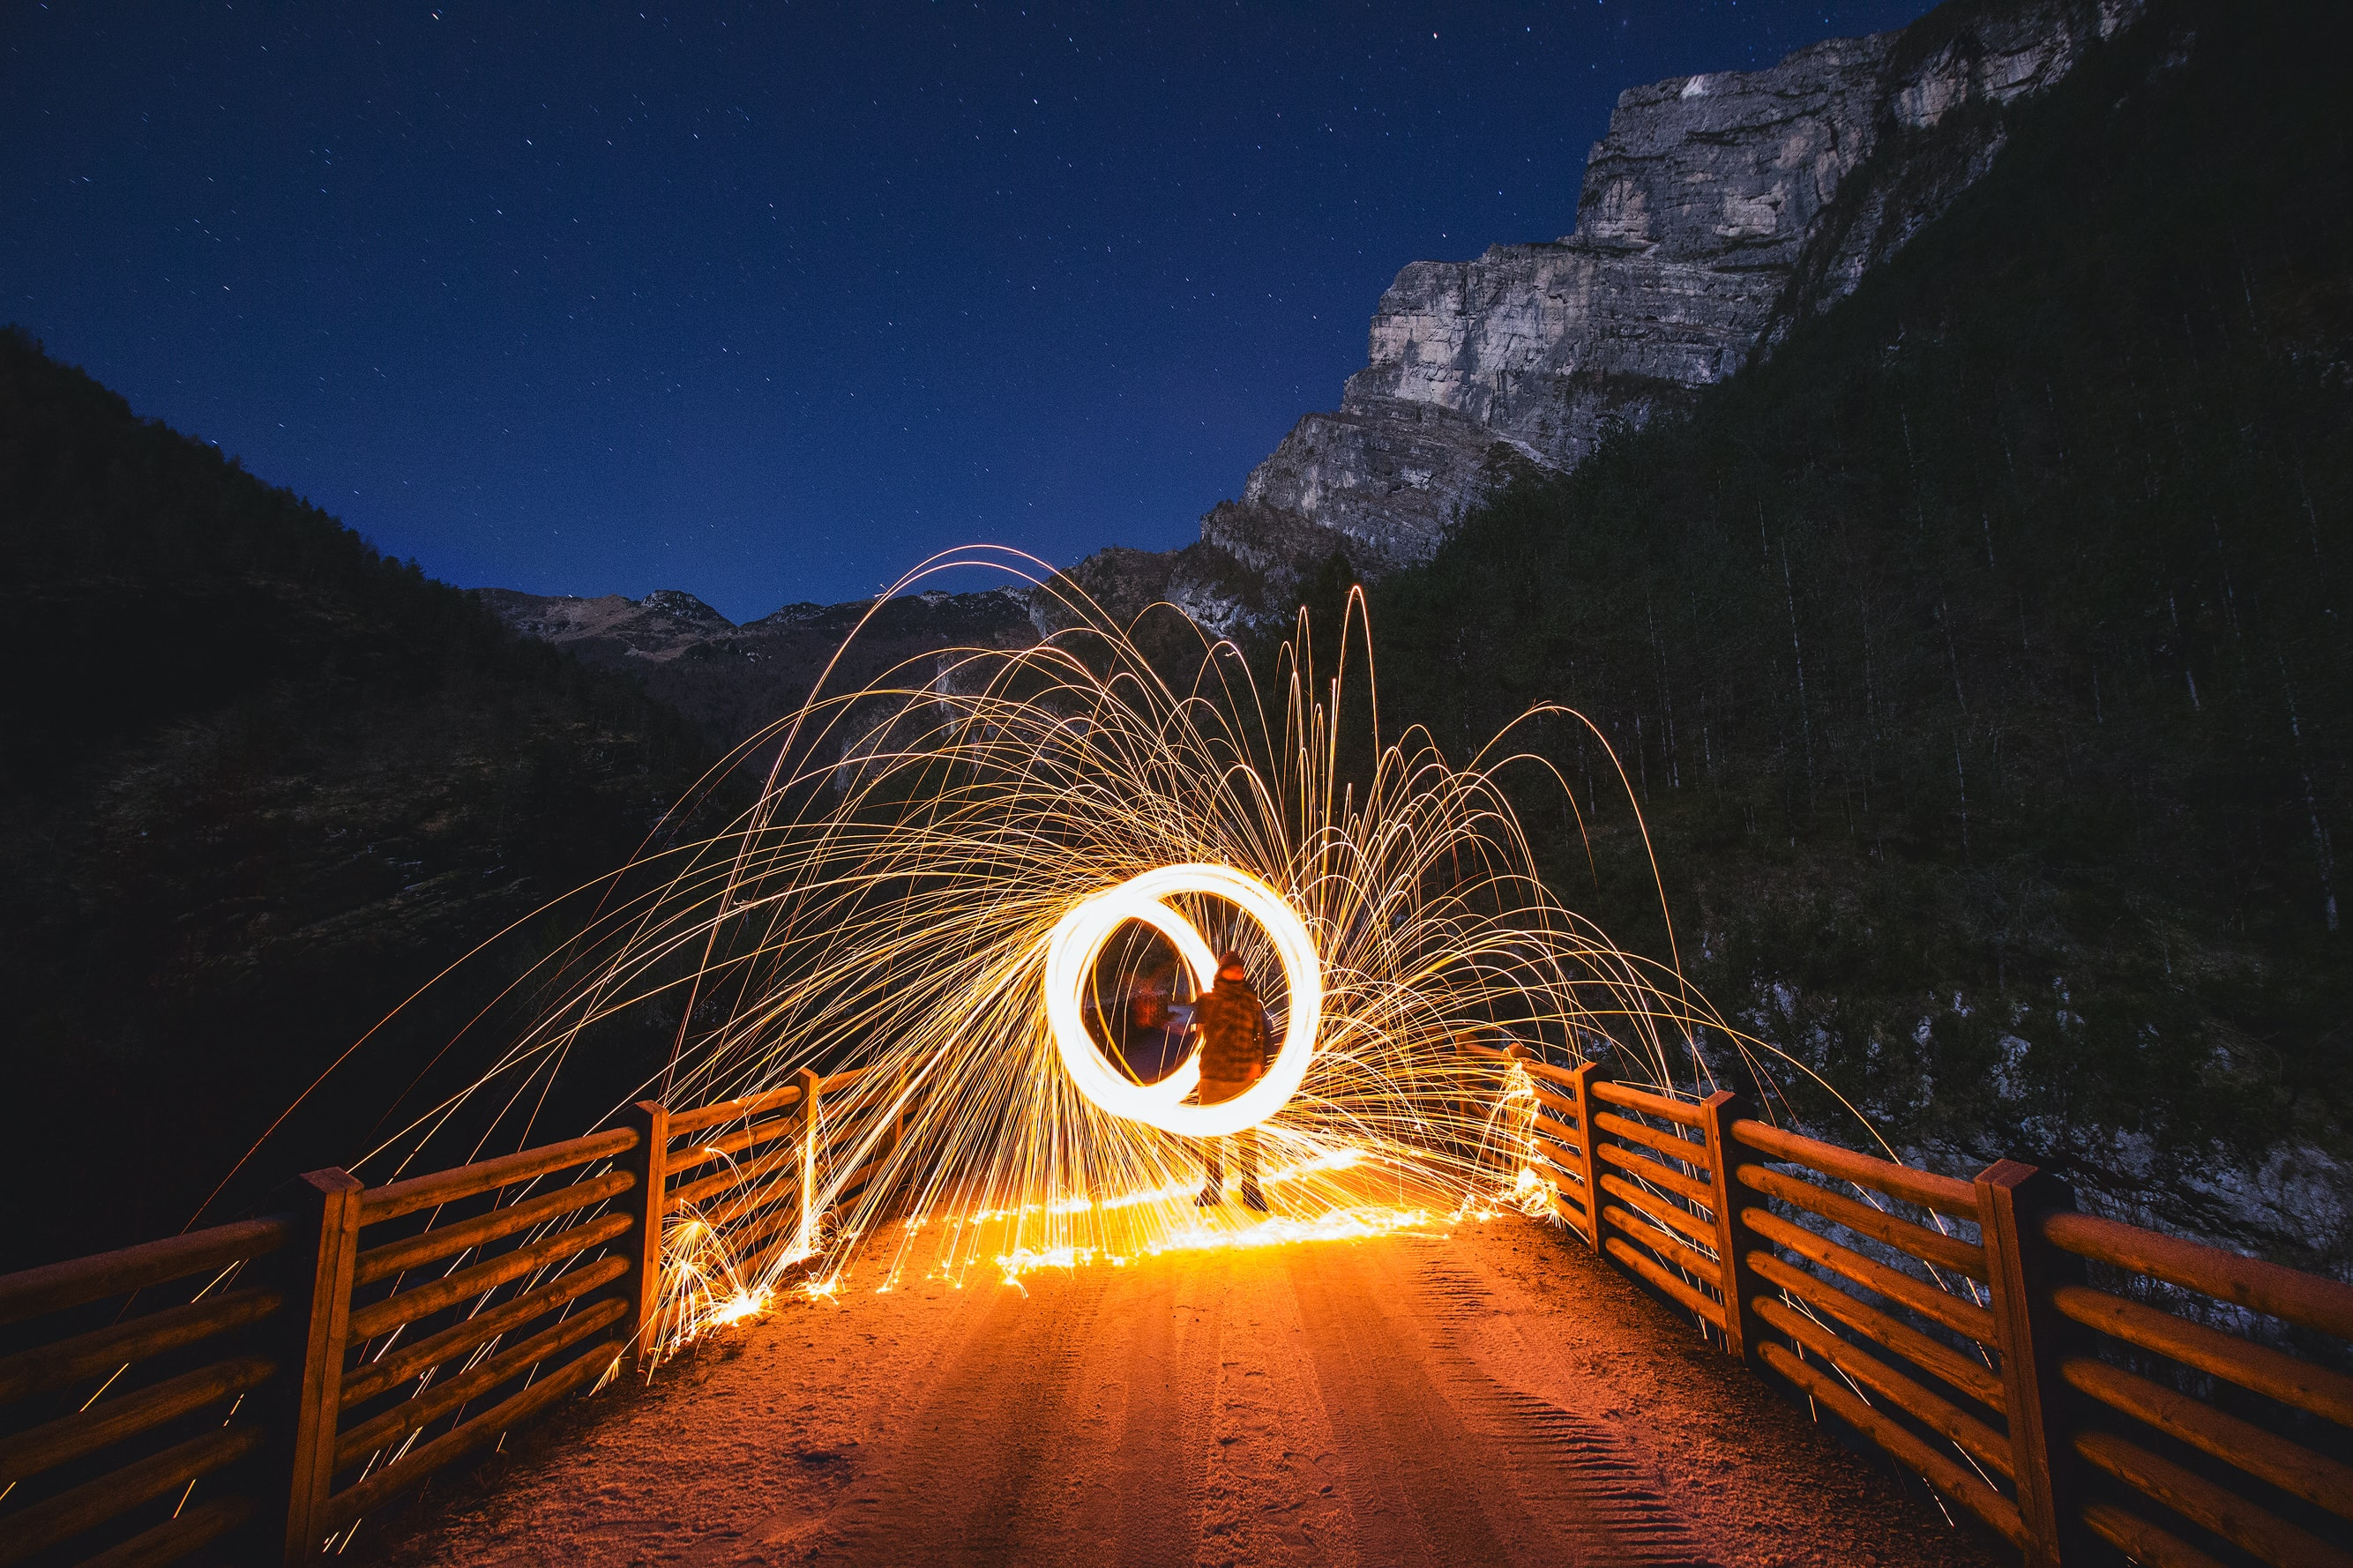 time-lapse photography of person holding steel wool on bridge